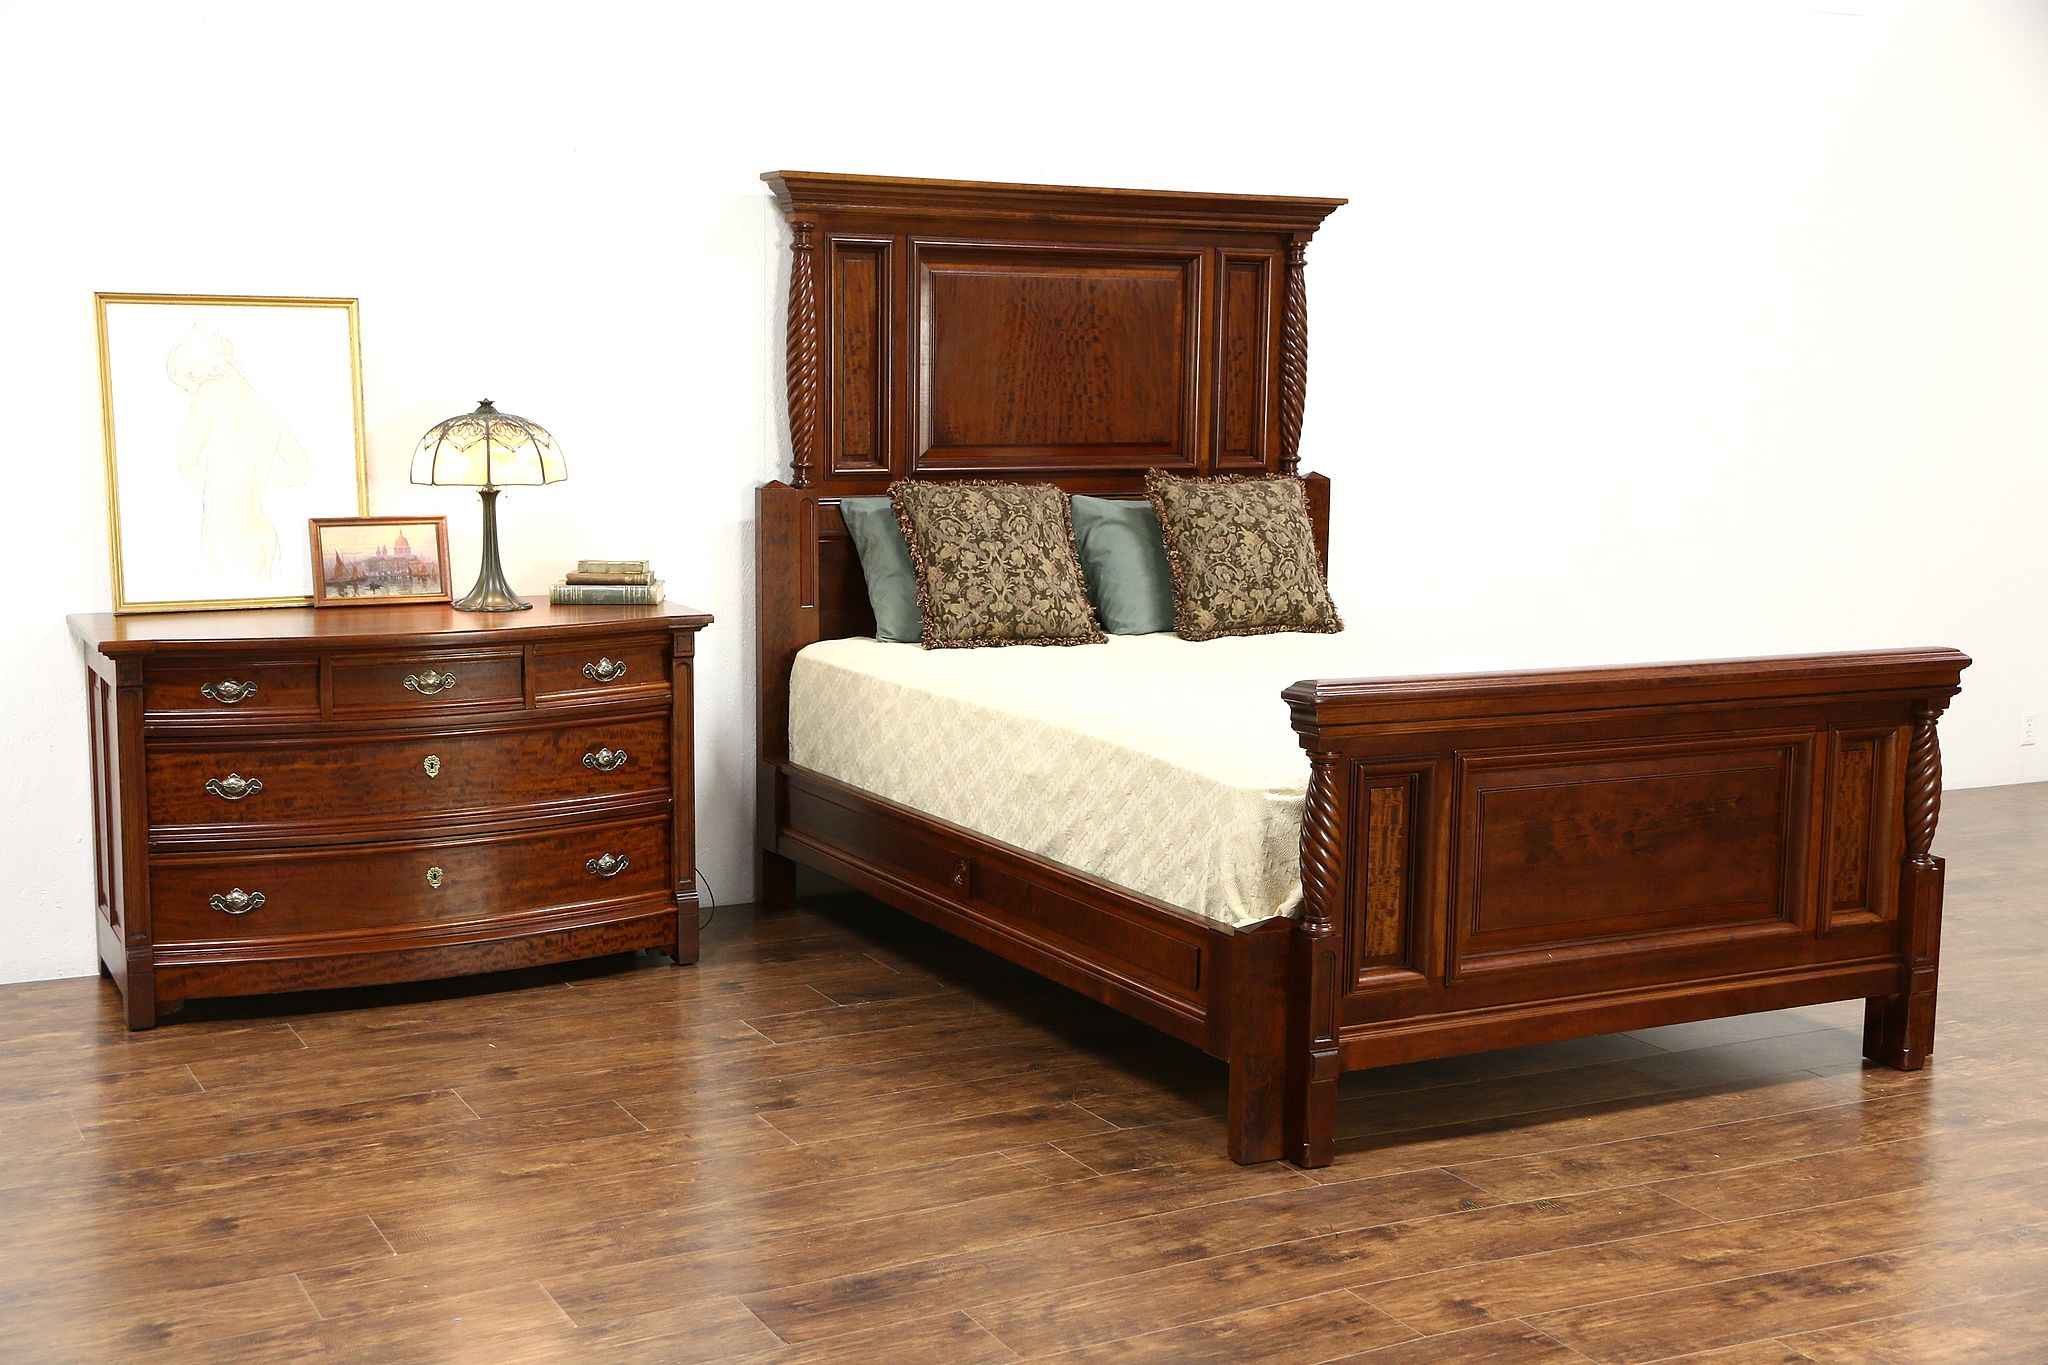 sold queen size 2 pc carved cherry mahogany 1890 antique rh harpgallery com antique bedroom sets mahogany antique bedroom sets white